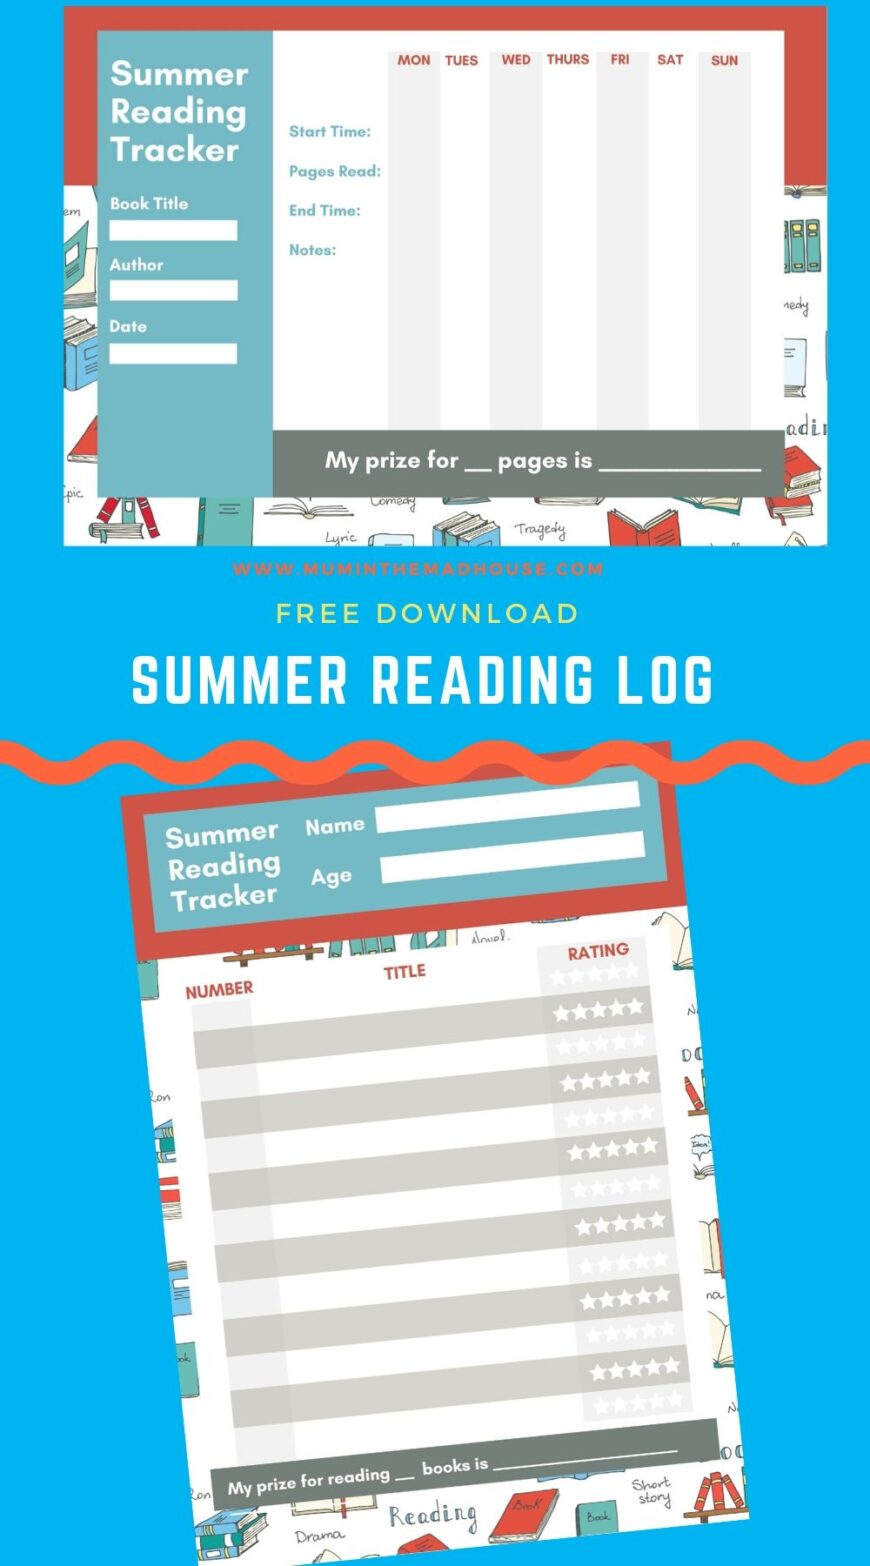 Free summer reading log printable that will inspire kids to read. Instead of giving your kids a list of books, provide them with our printables and set them a Summer Reading Challenge.